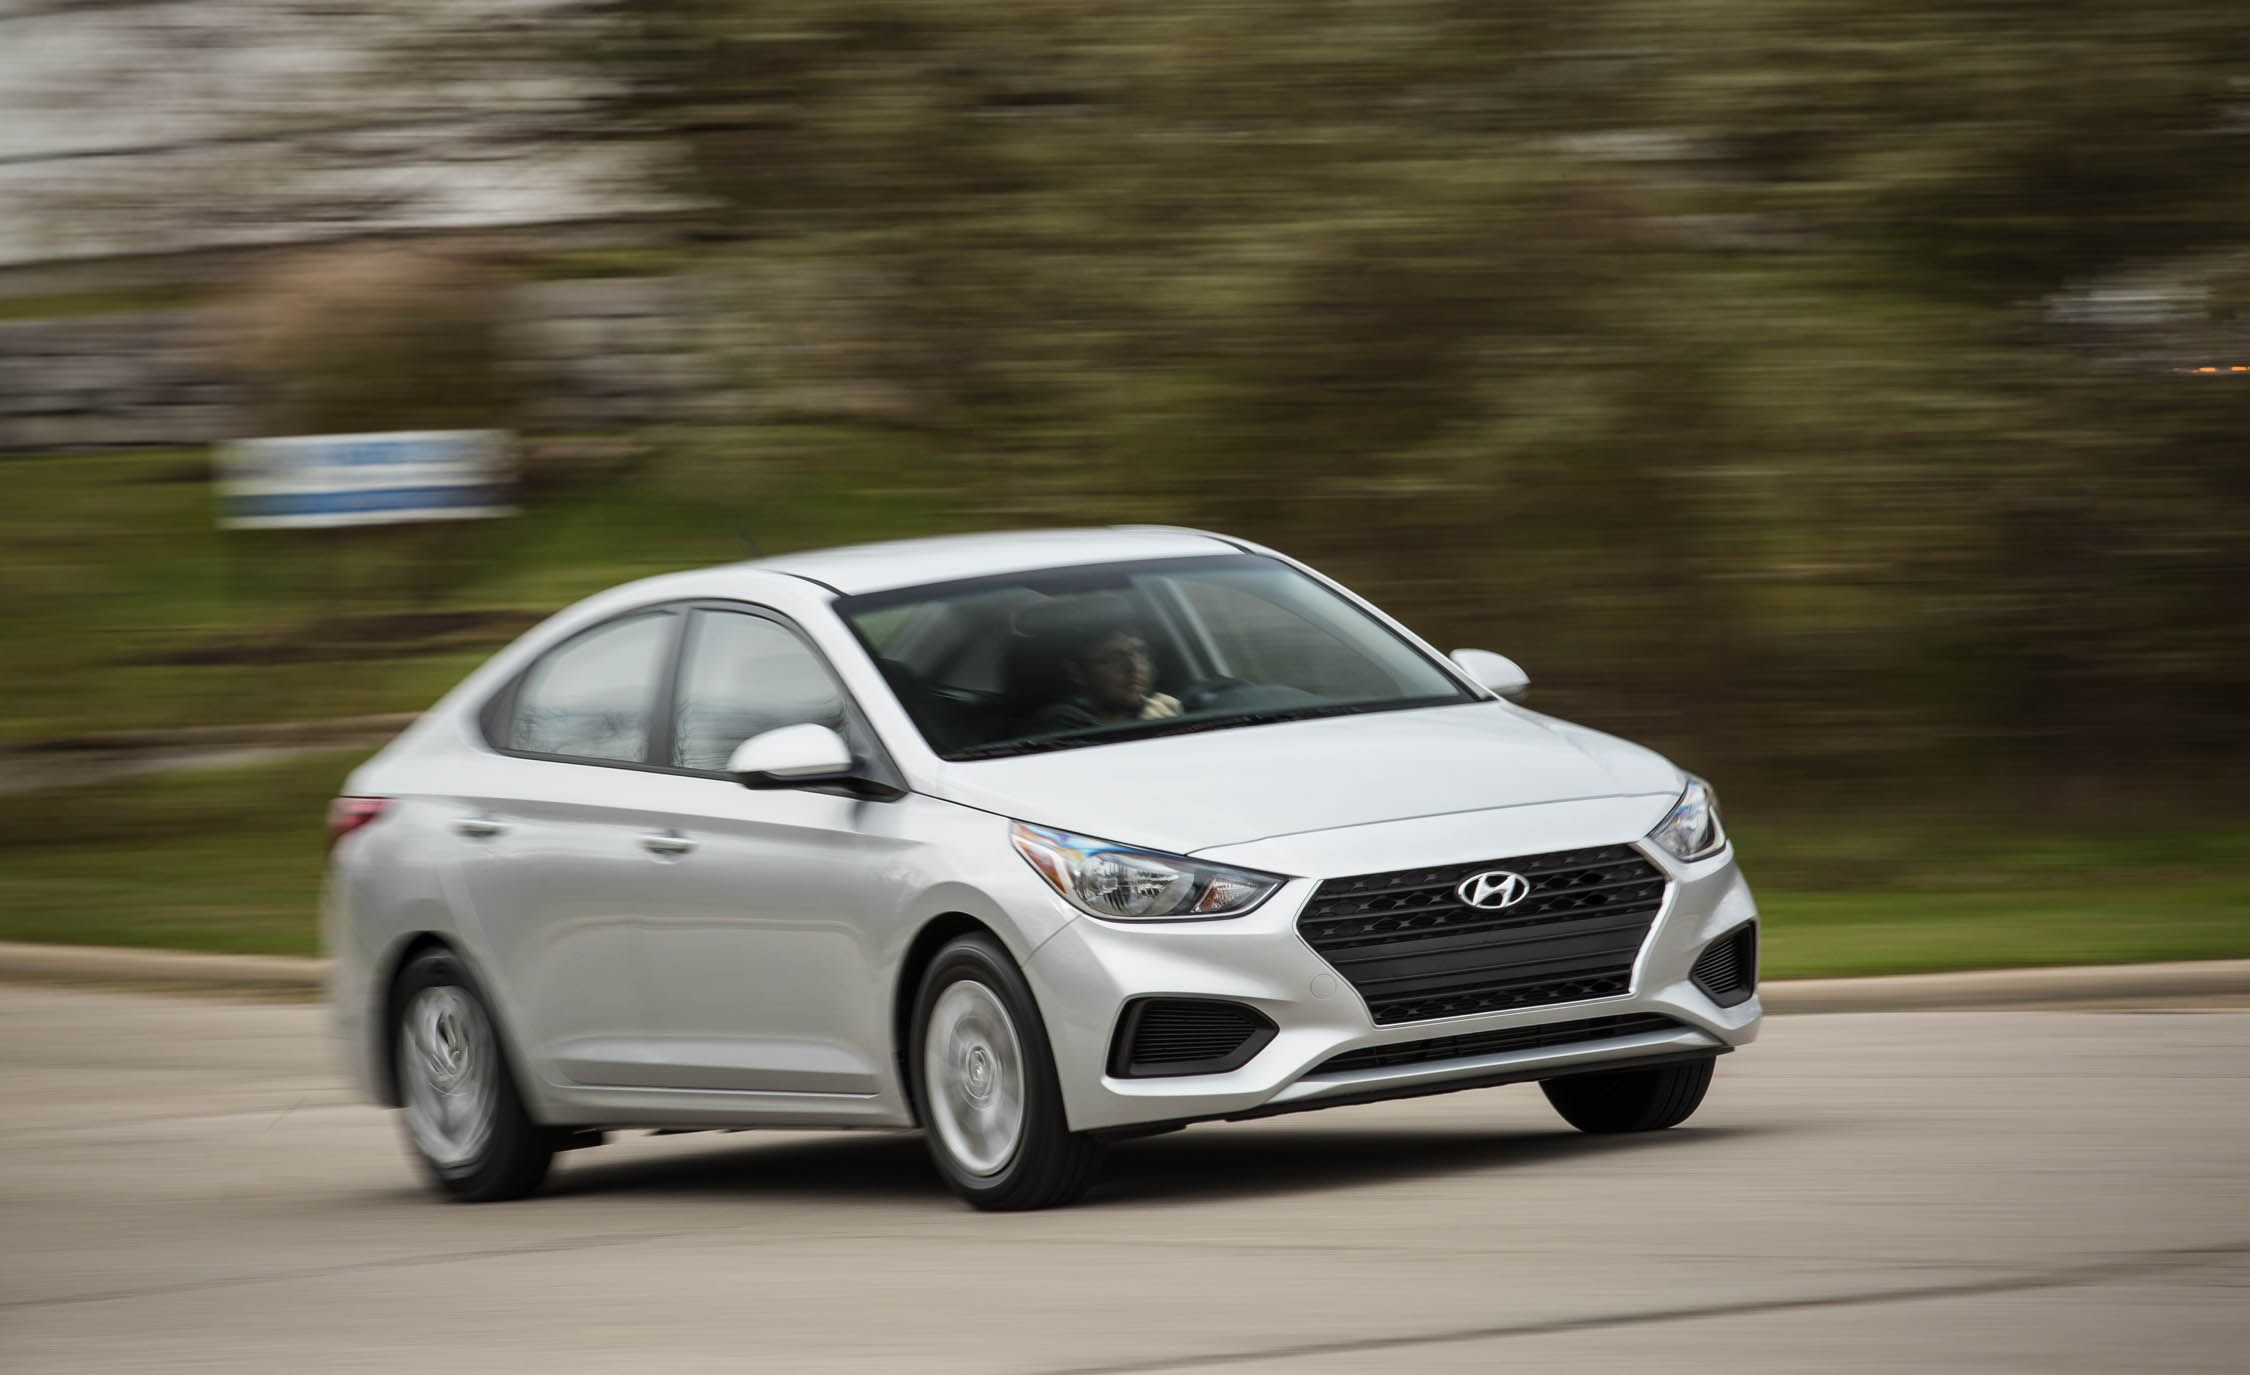 2019 Hyundai Accent Reviews Hyundai Accent Price Photos And